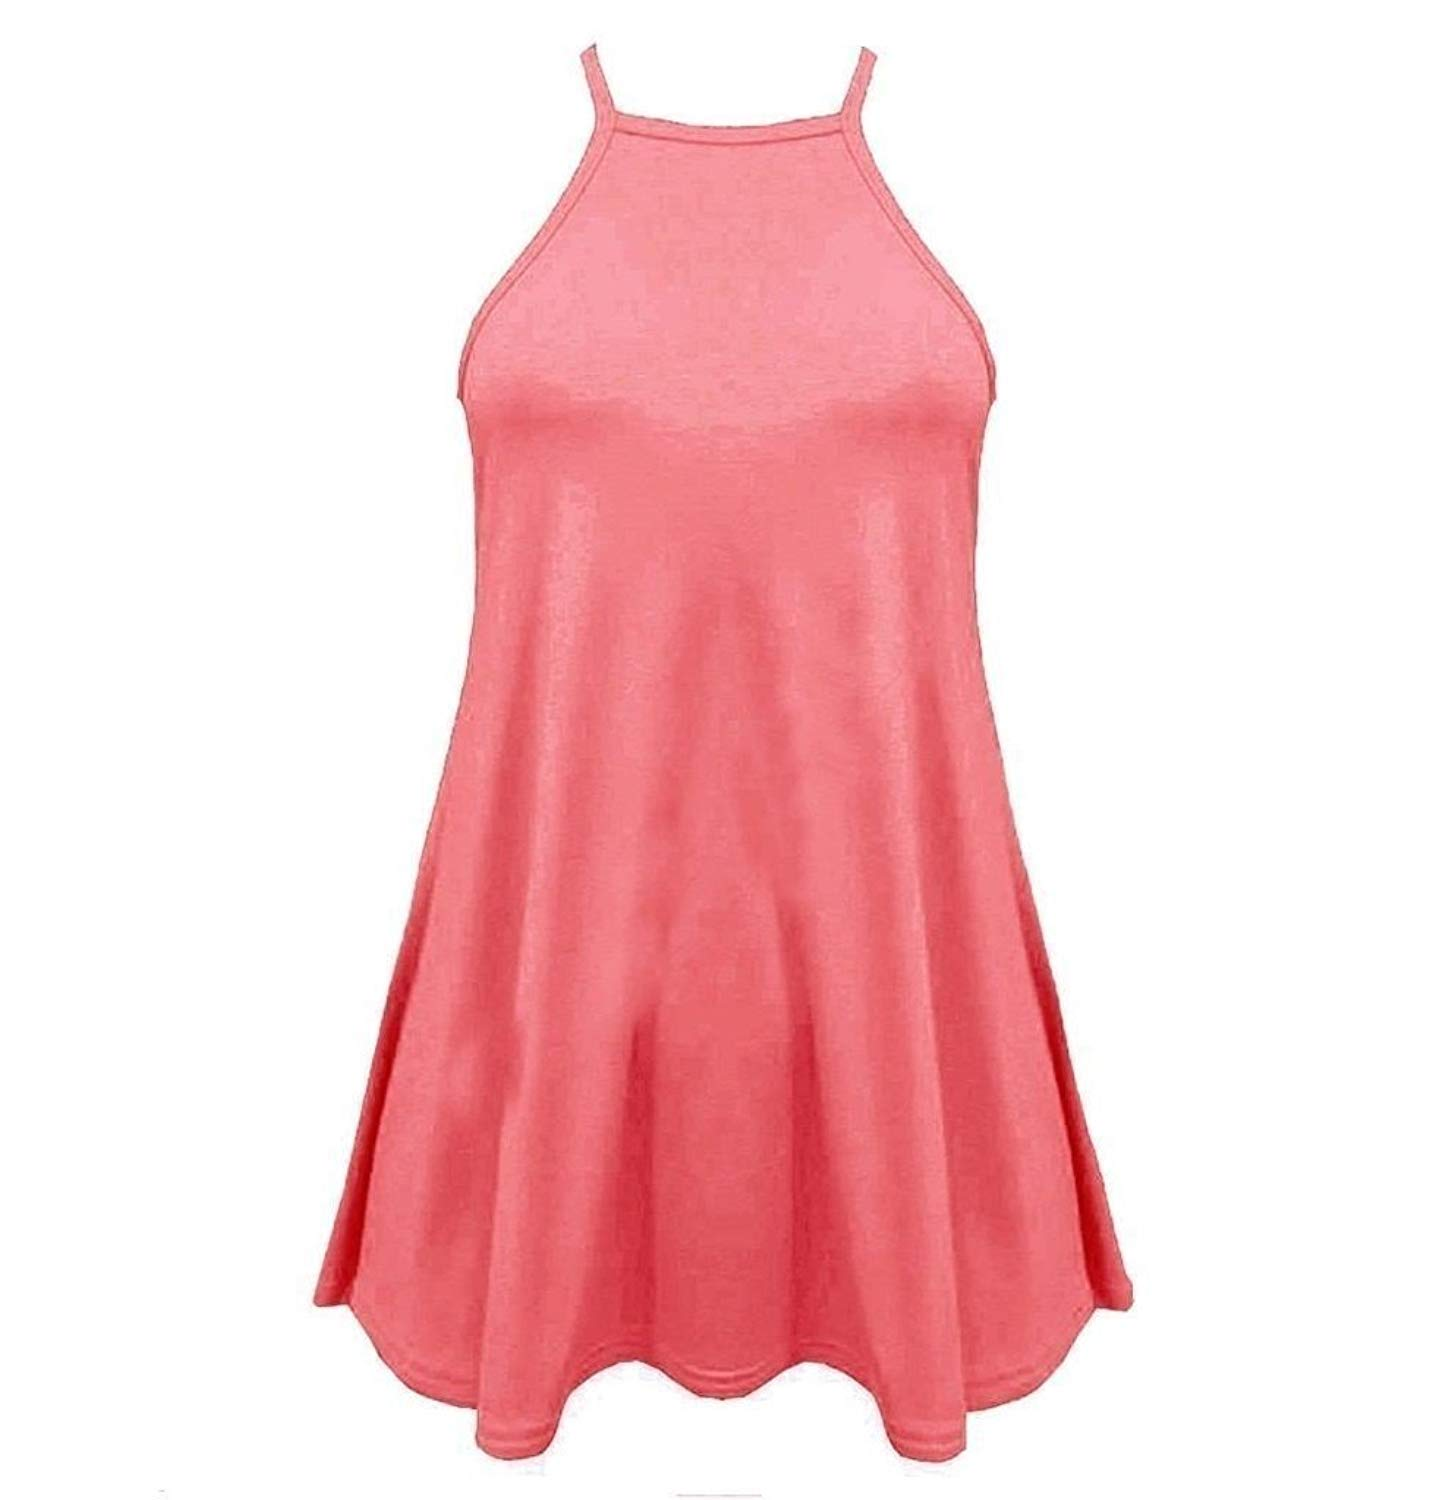 868cf085f1115f Get Quotations · Women High Neck Cami Sleeveless Swing Vest Ladies Skater  Top Plus Size